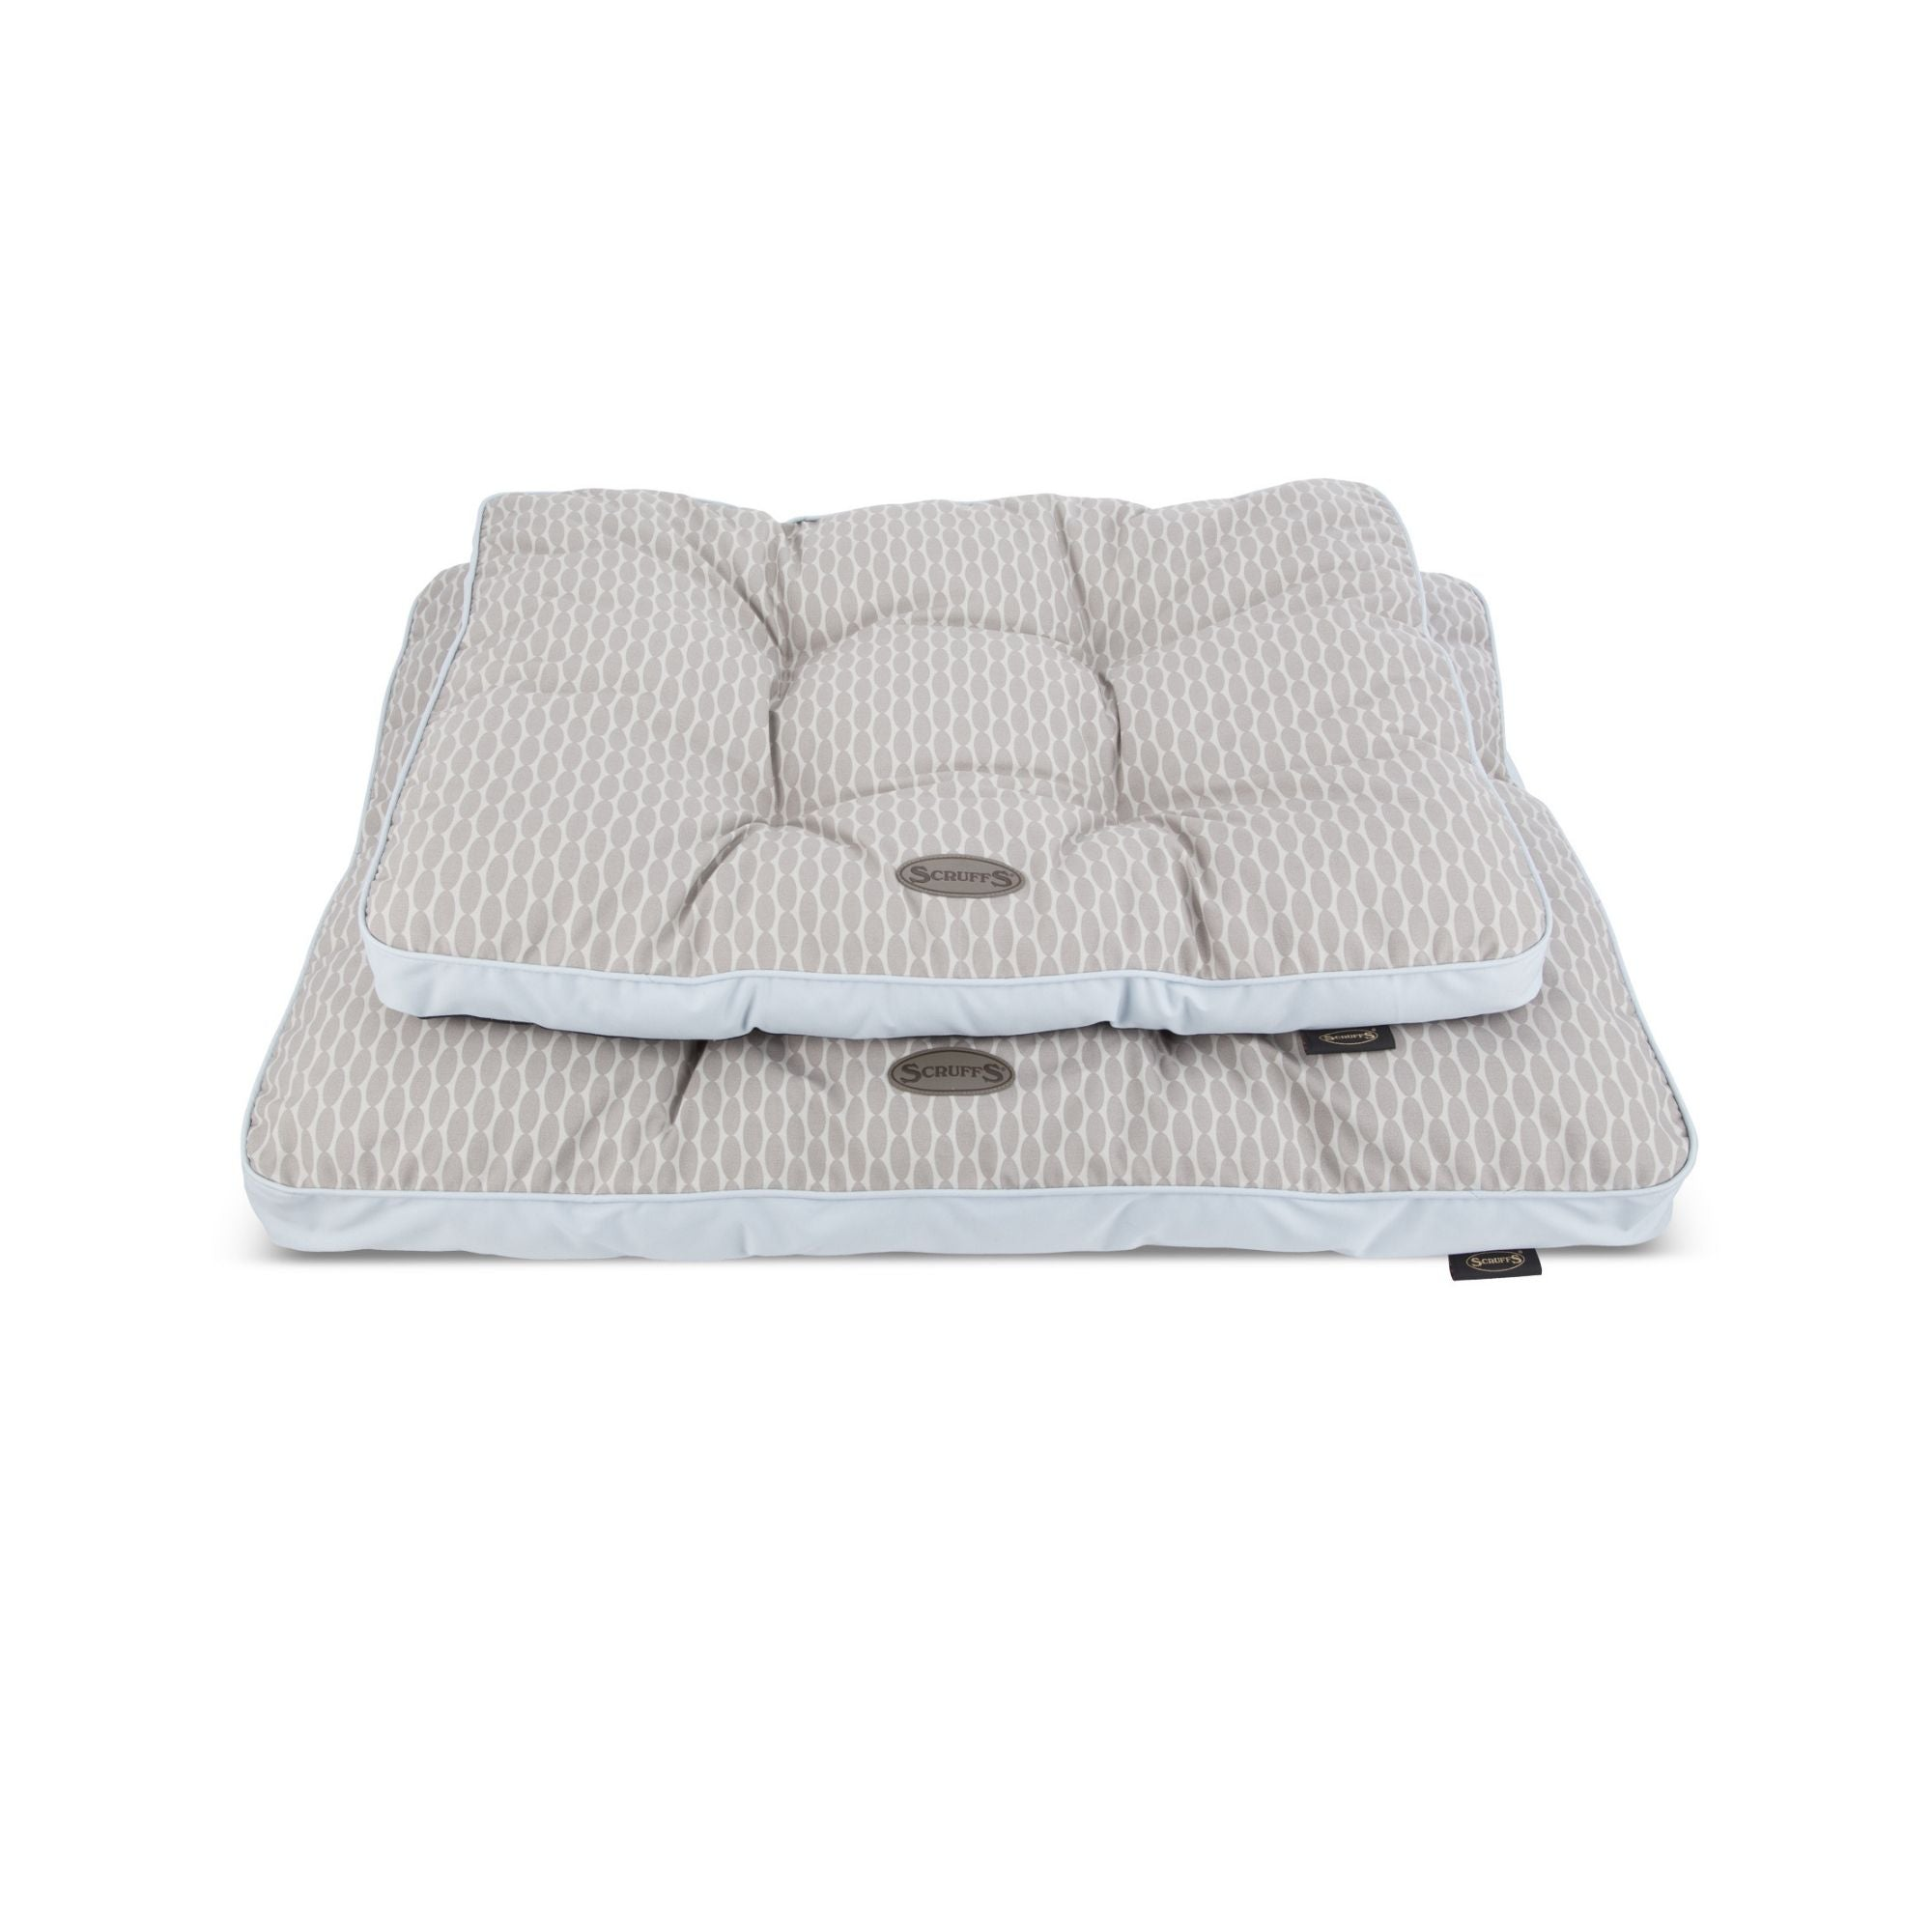 Scruffs Siesta Mattress, Lightweight Dog Bed | Barks & Bunnies